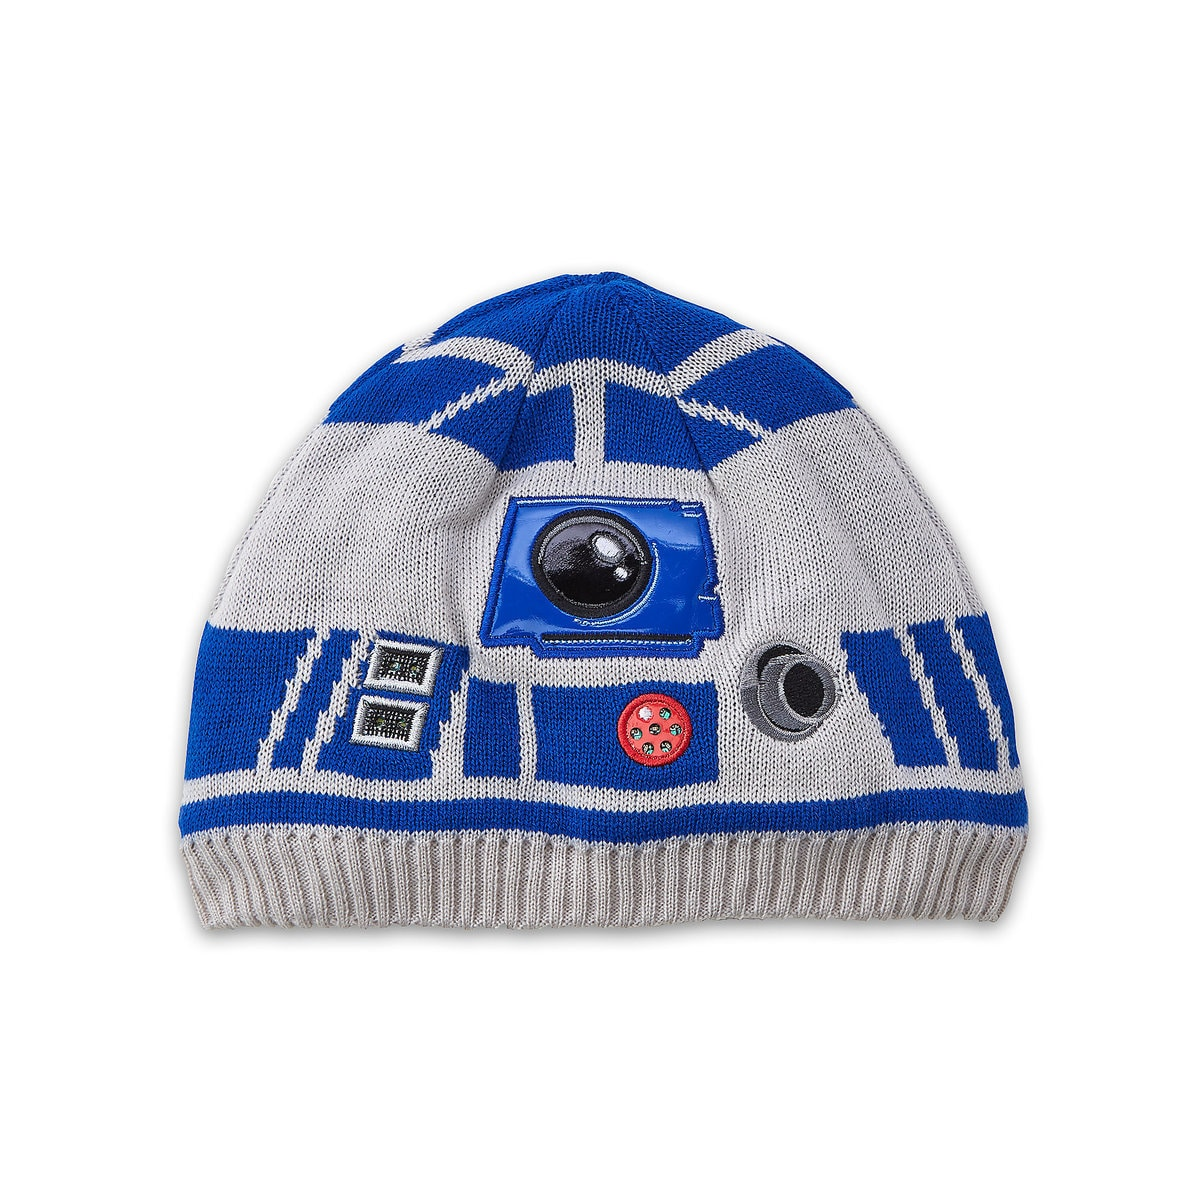 8e3ab369a75f9 Product Image of R2-D2 Light-Up Beanie Hat for Kids - Star Wars